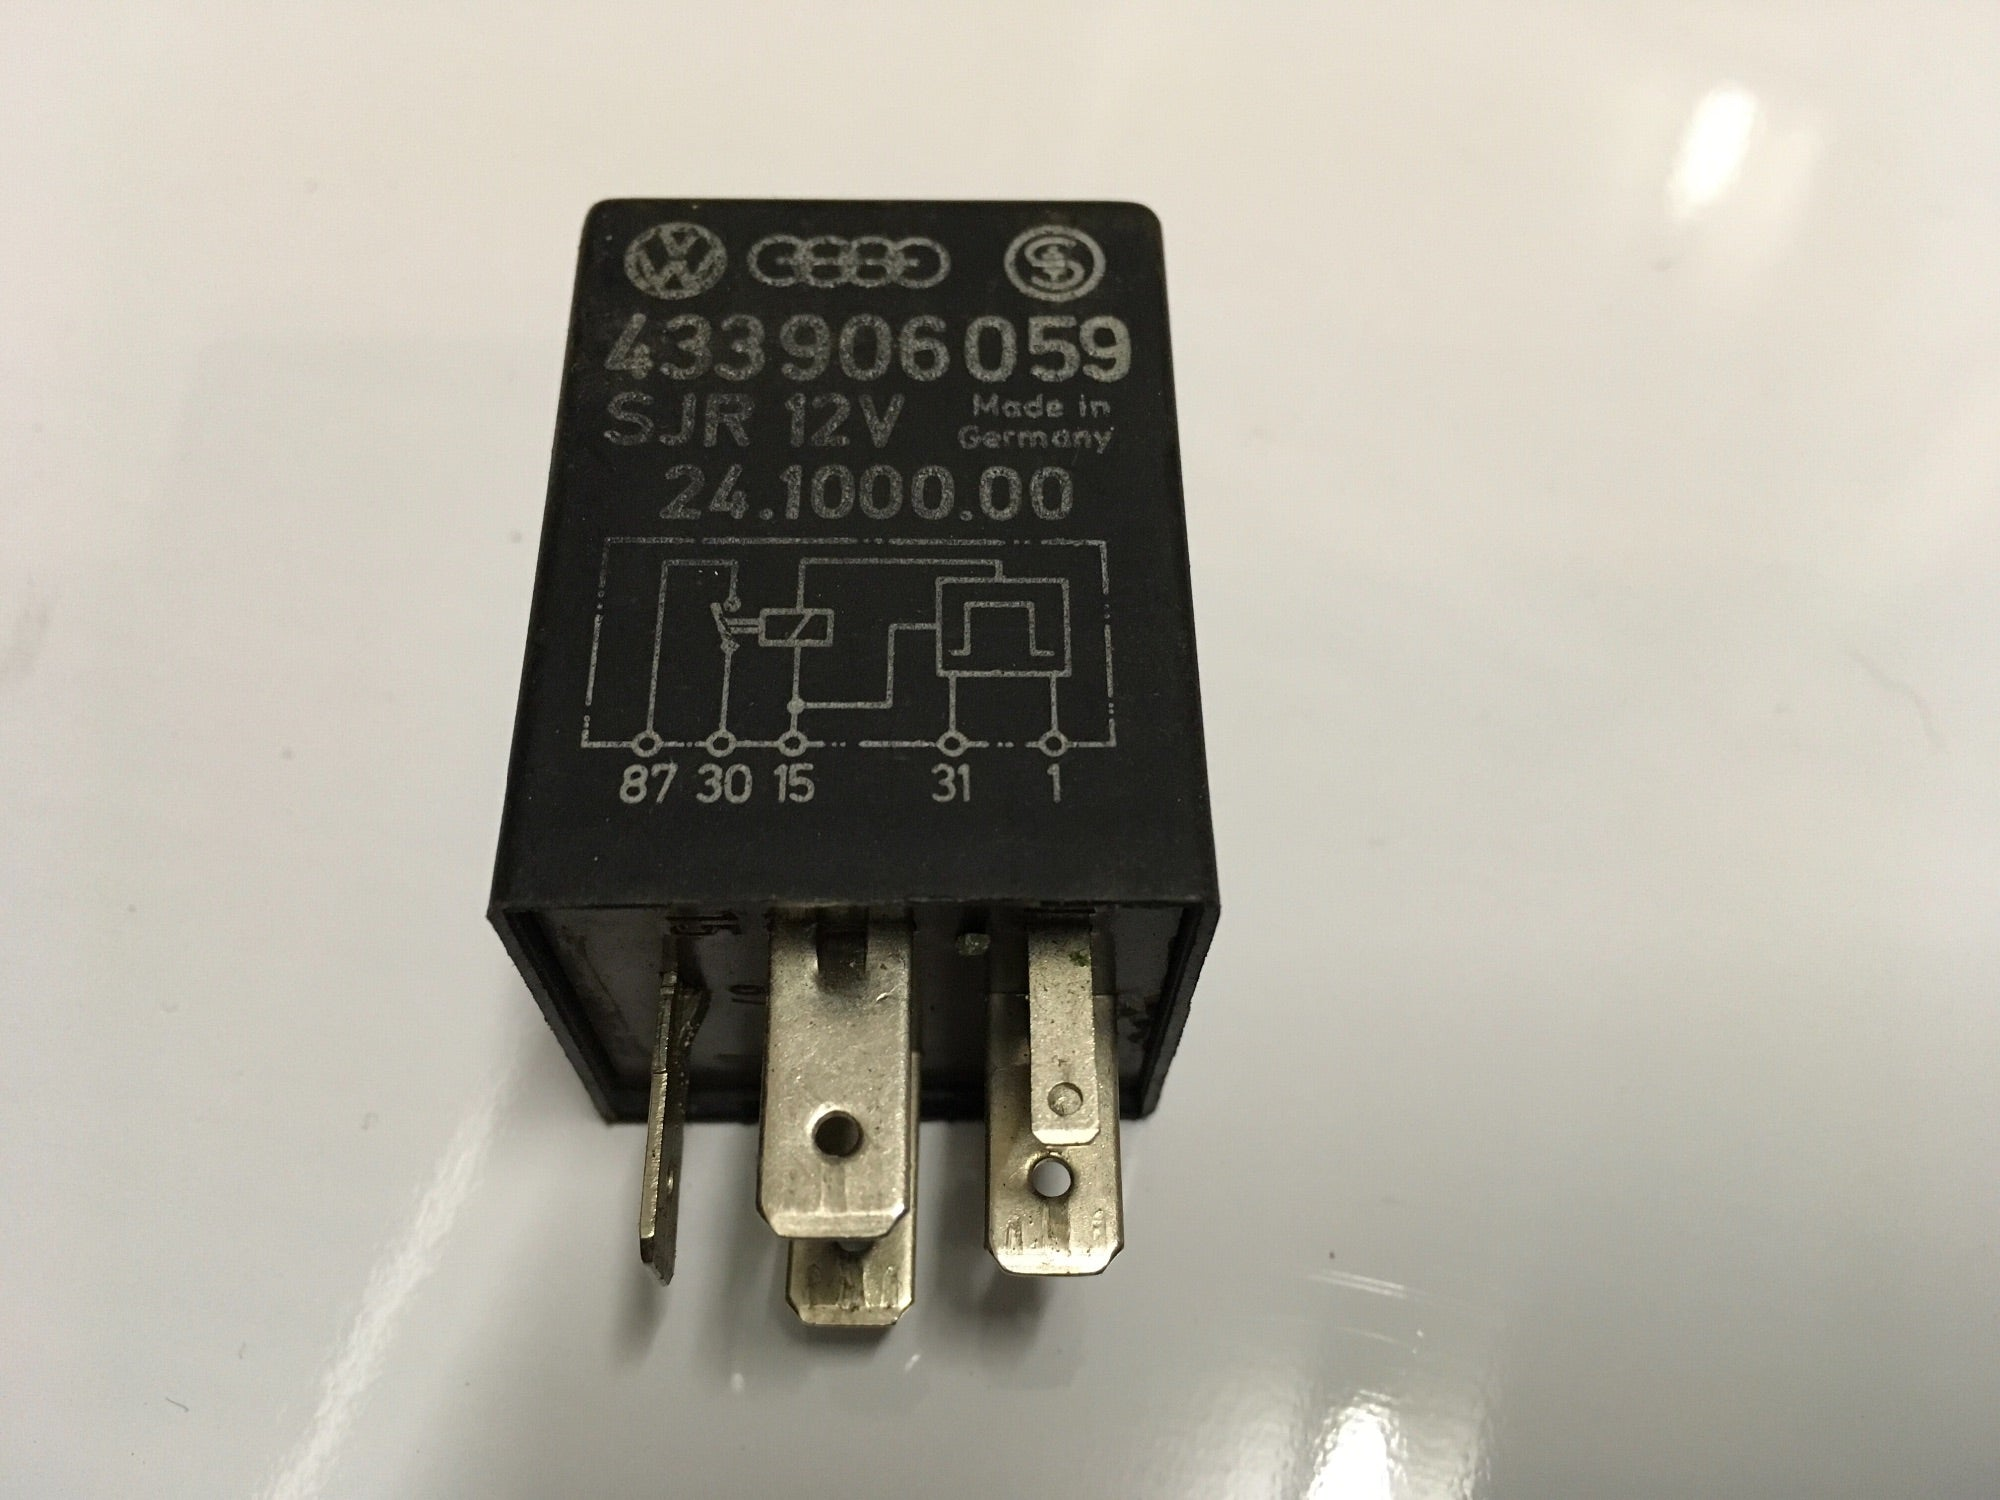 Porsche 924 Fuel Pump Relay,Genuine  433906059.  1979-82 433 906 059 ((LB202)) - Woolies Workshop - Porsche 924 944 spares